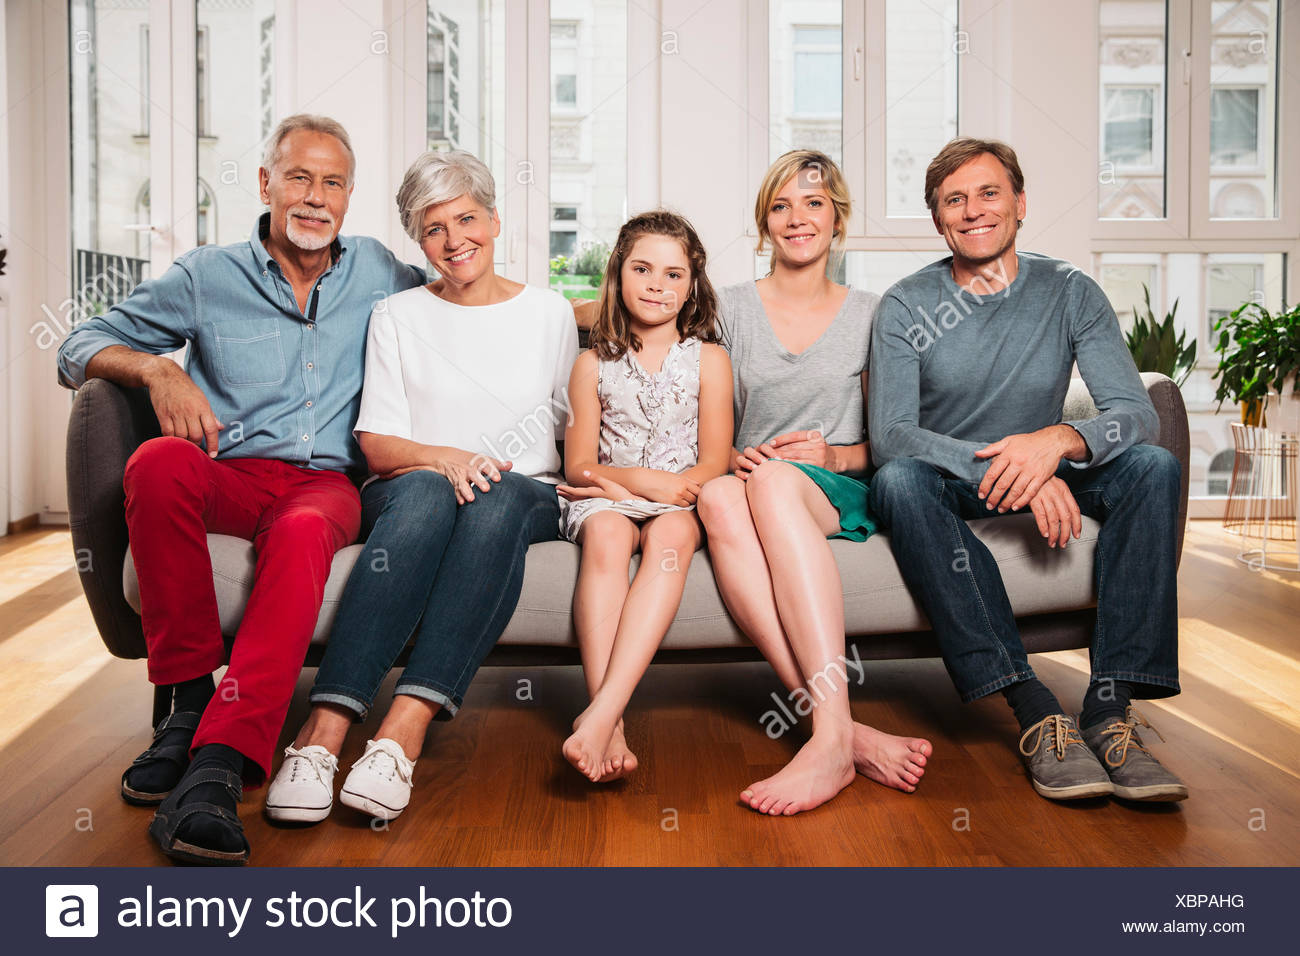 gruppenbild von drei generationen familie sitzt auf einer couch stockfoto bild 282618380 alamy. Black Bedroom Furniture Sets. Home Design Ideas